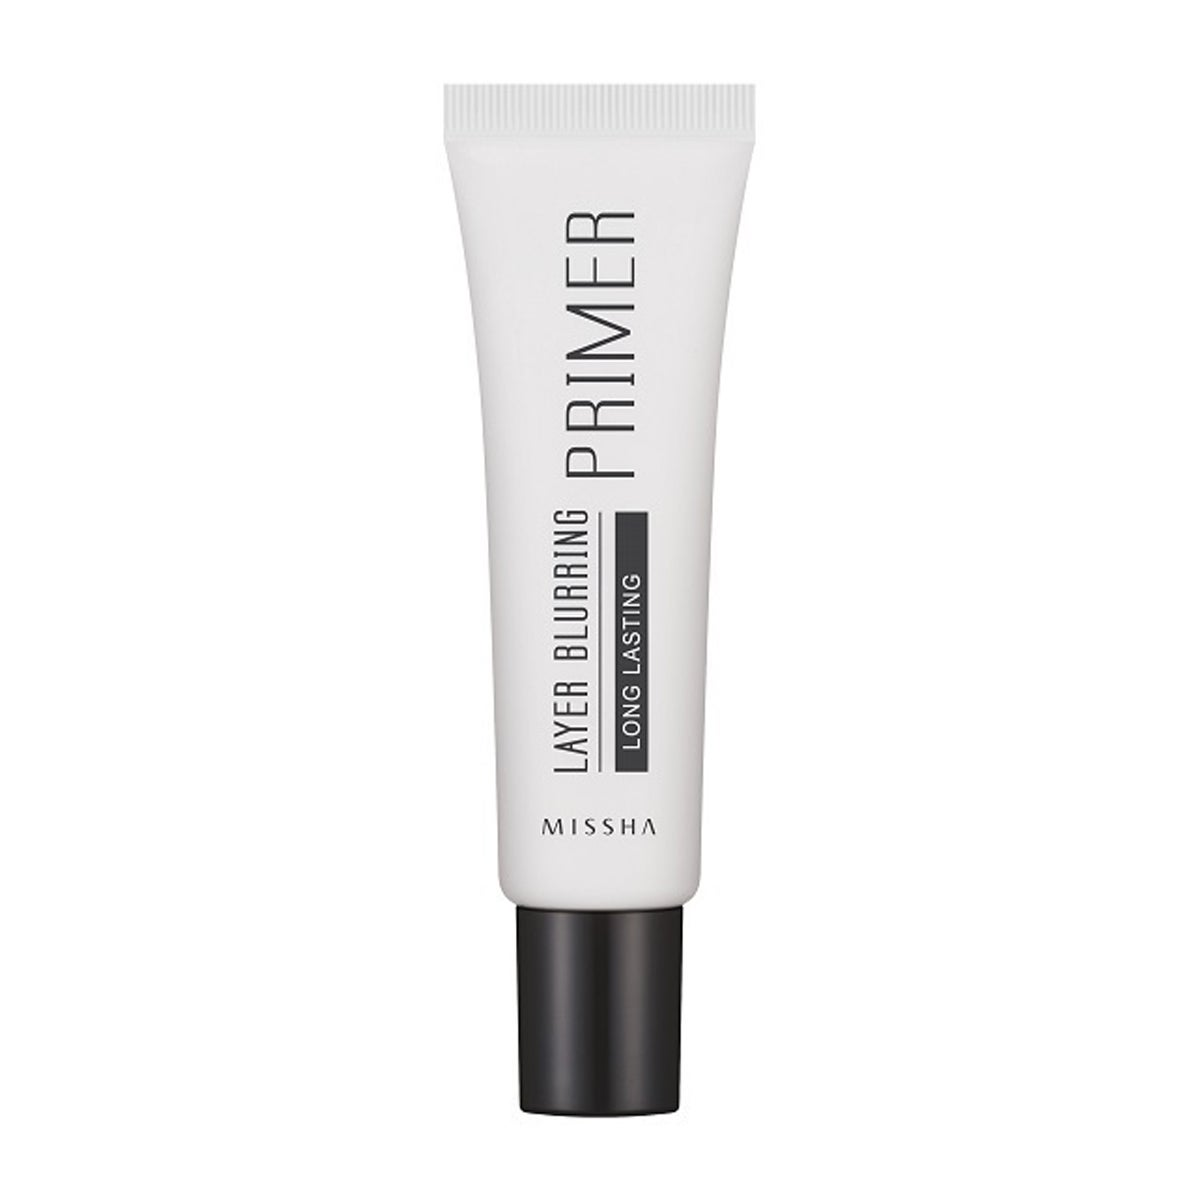 MISSHA Layer Blurring Primer Long Lasting